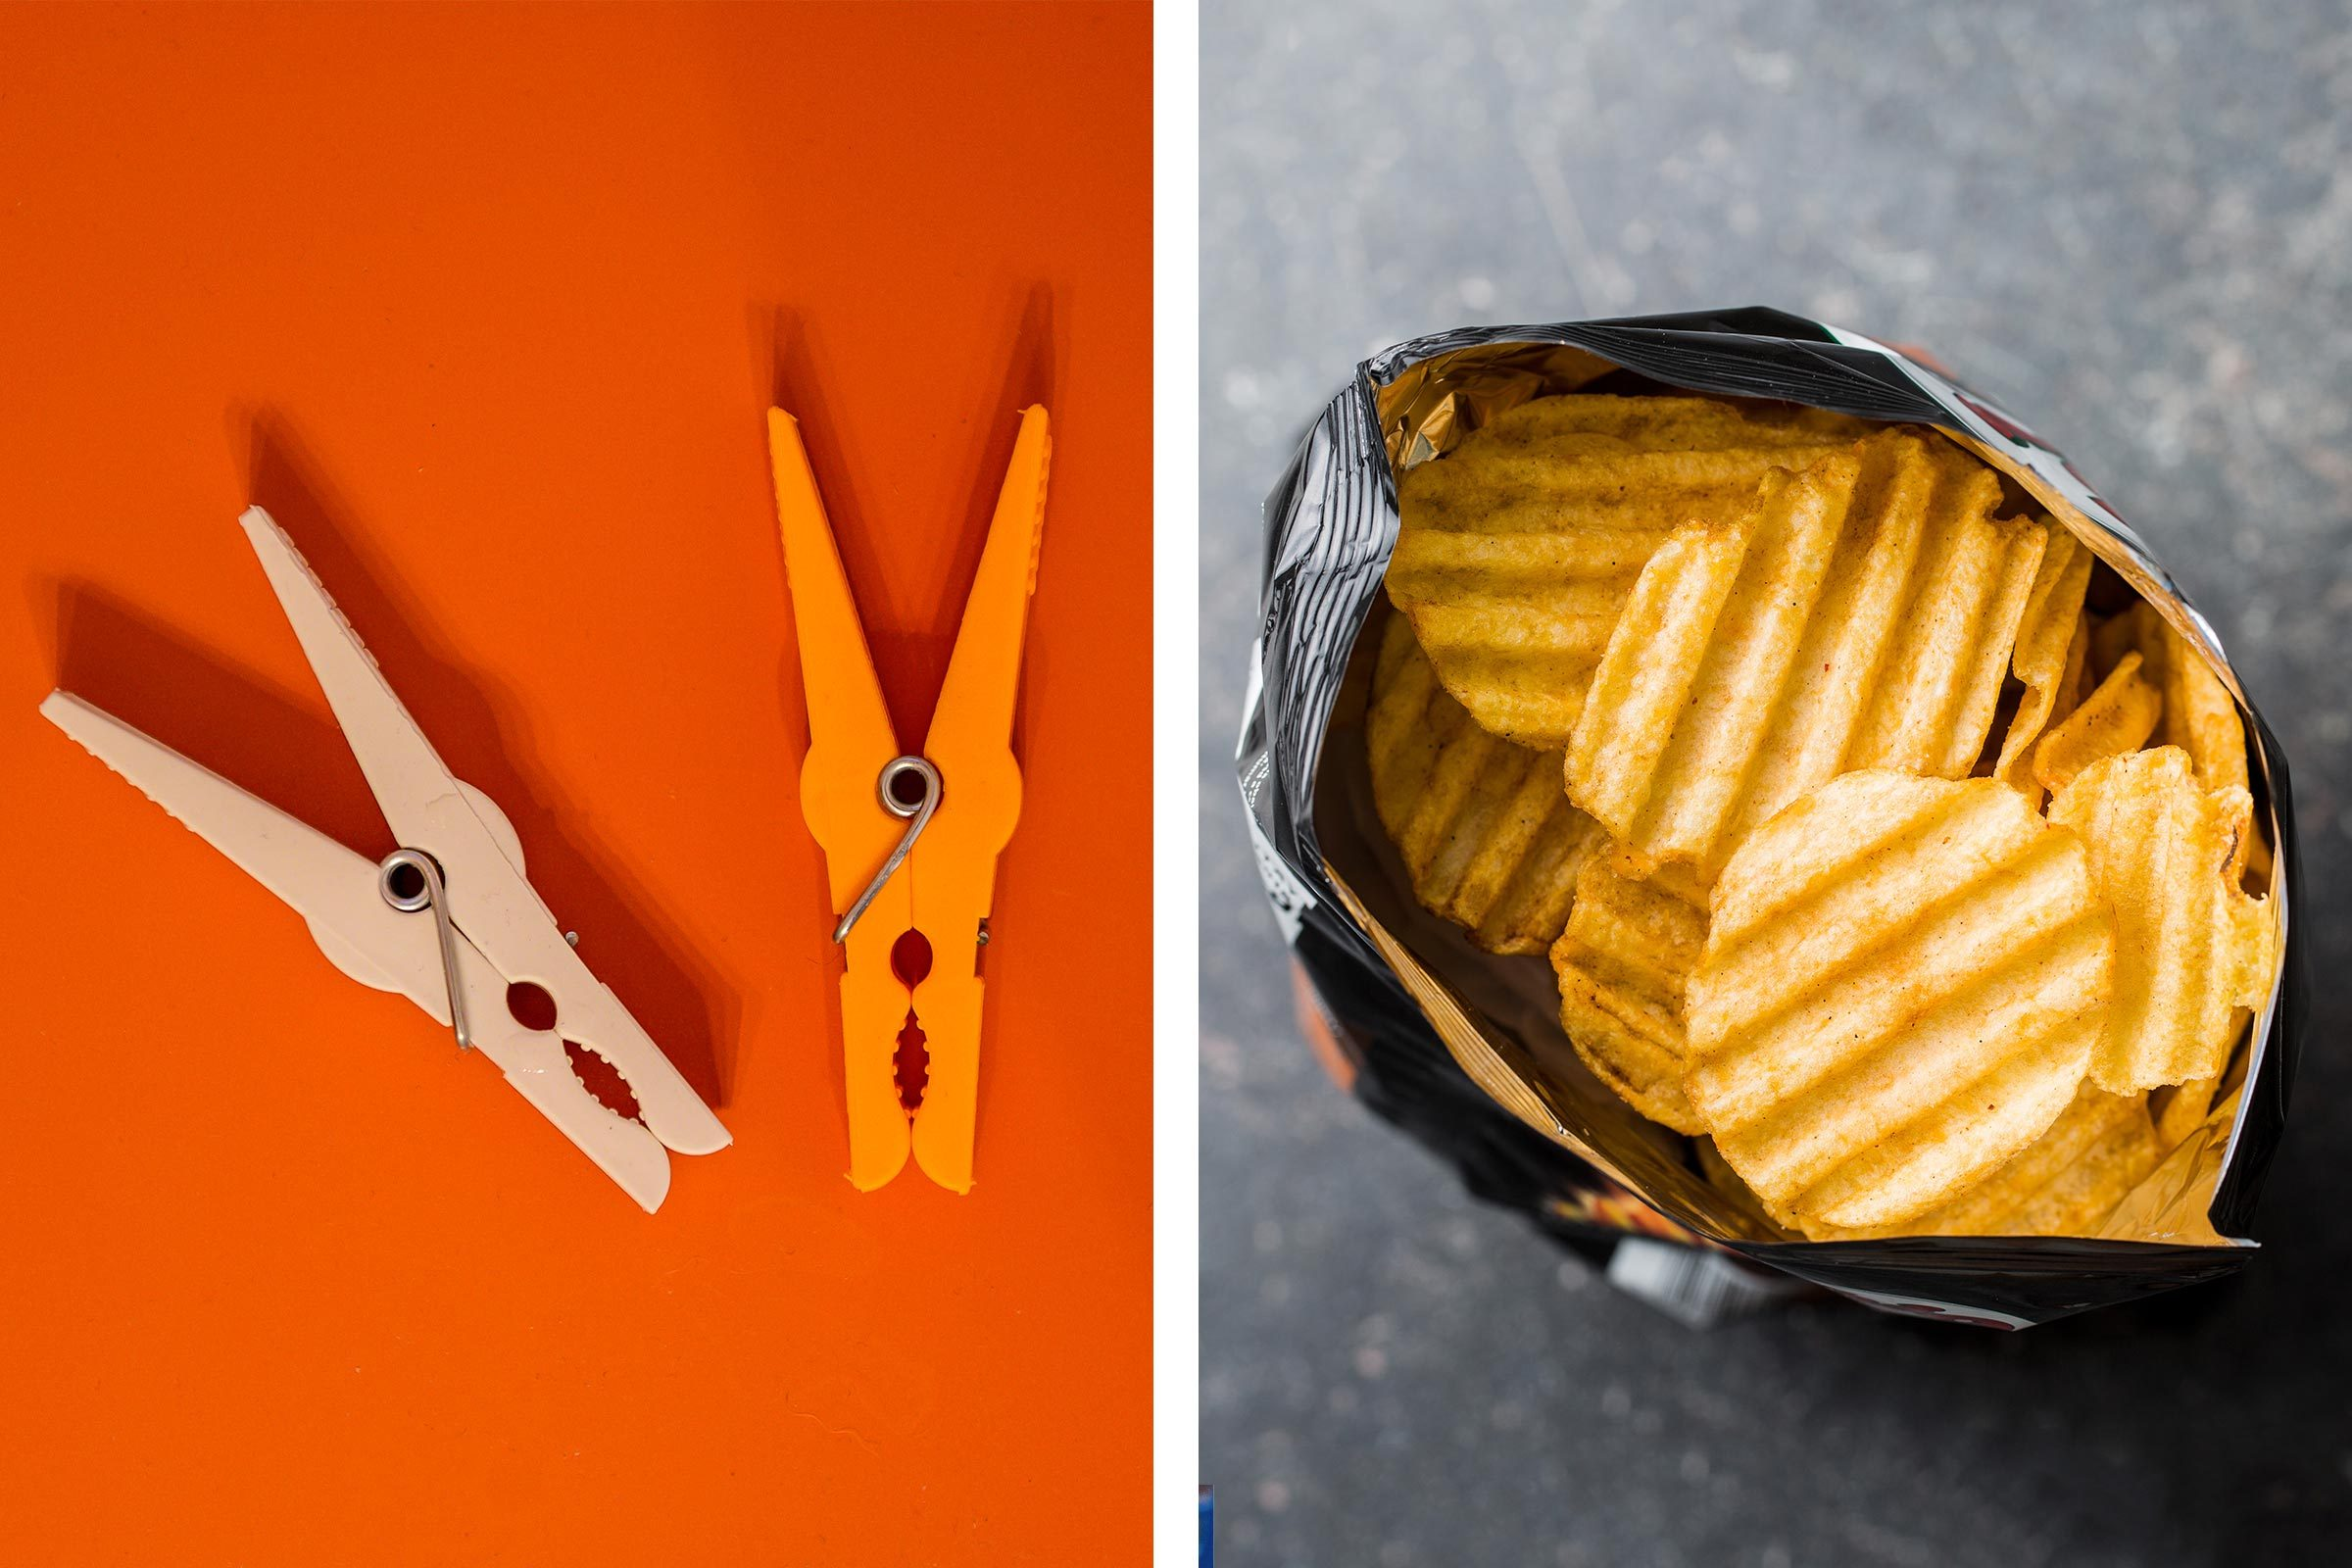 Clothes hangers as chip clips